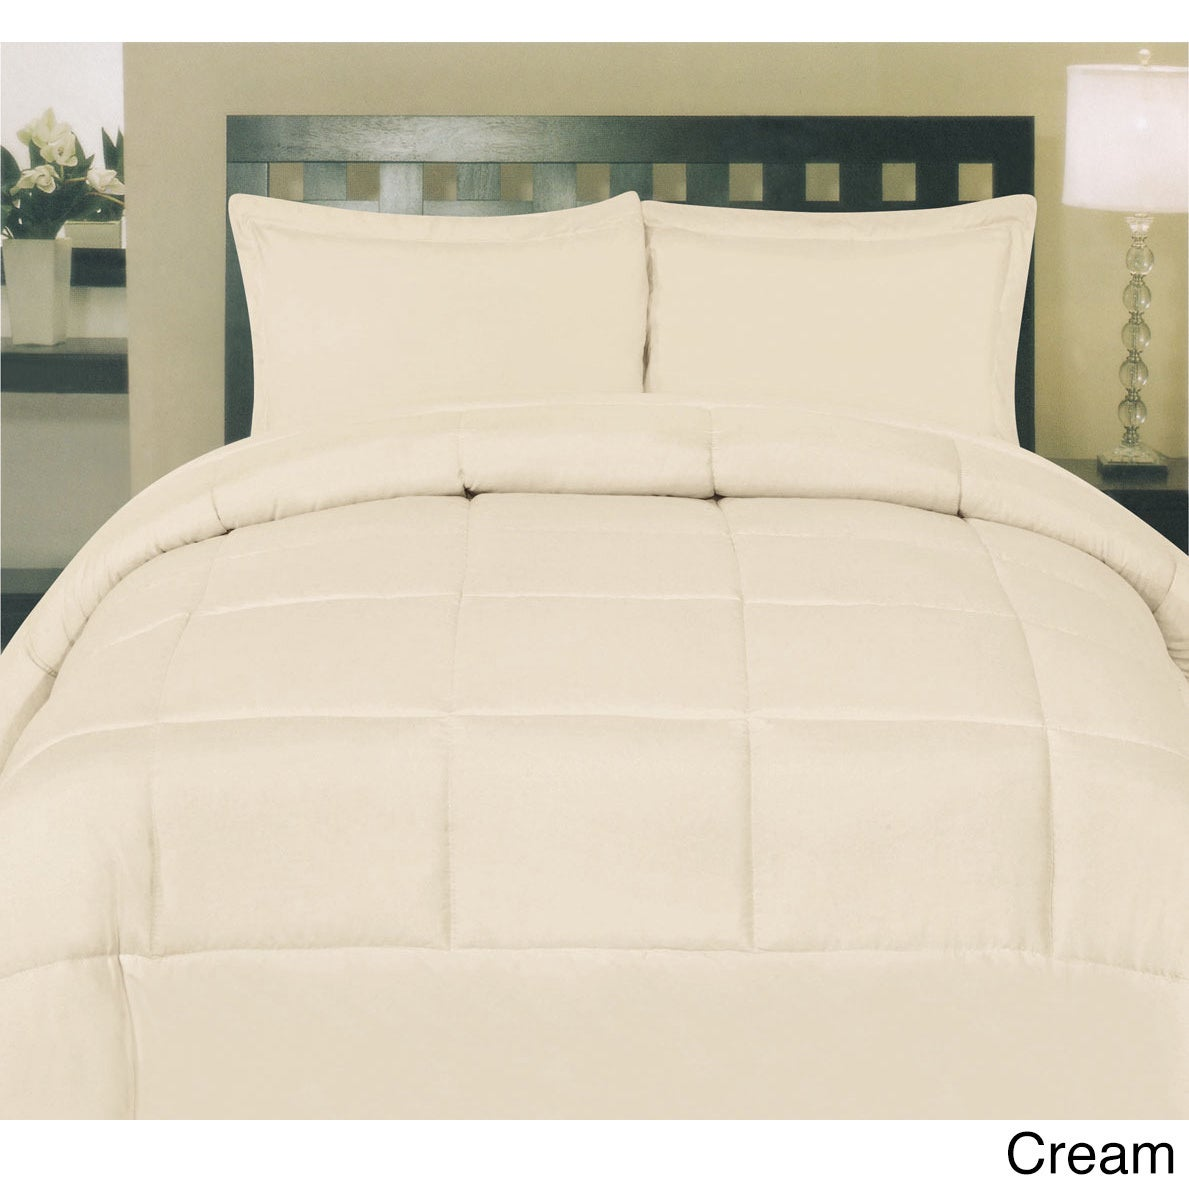 comforter chic comforters agreeable cases light alternative the clarity including other solid one highest pillow is archaiccomely peach nursery baby set colored cream sets throw fab best king captivating goose size bedding kind of down ruffle has total gallery